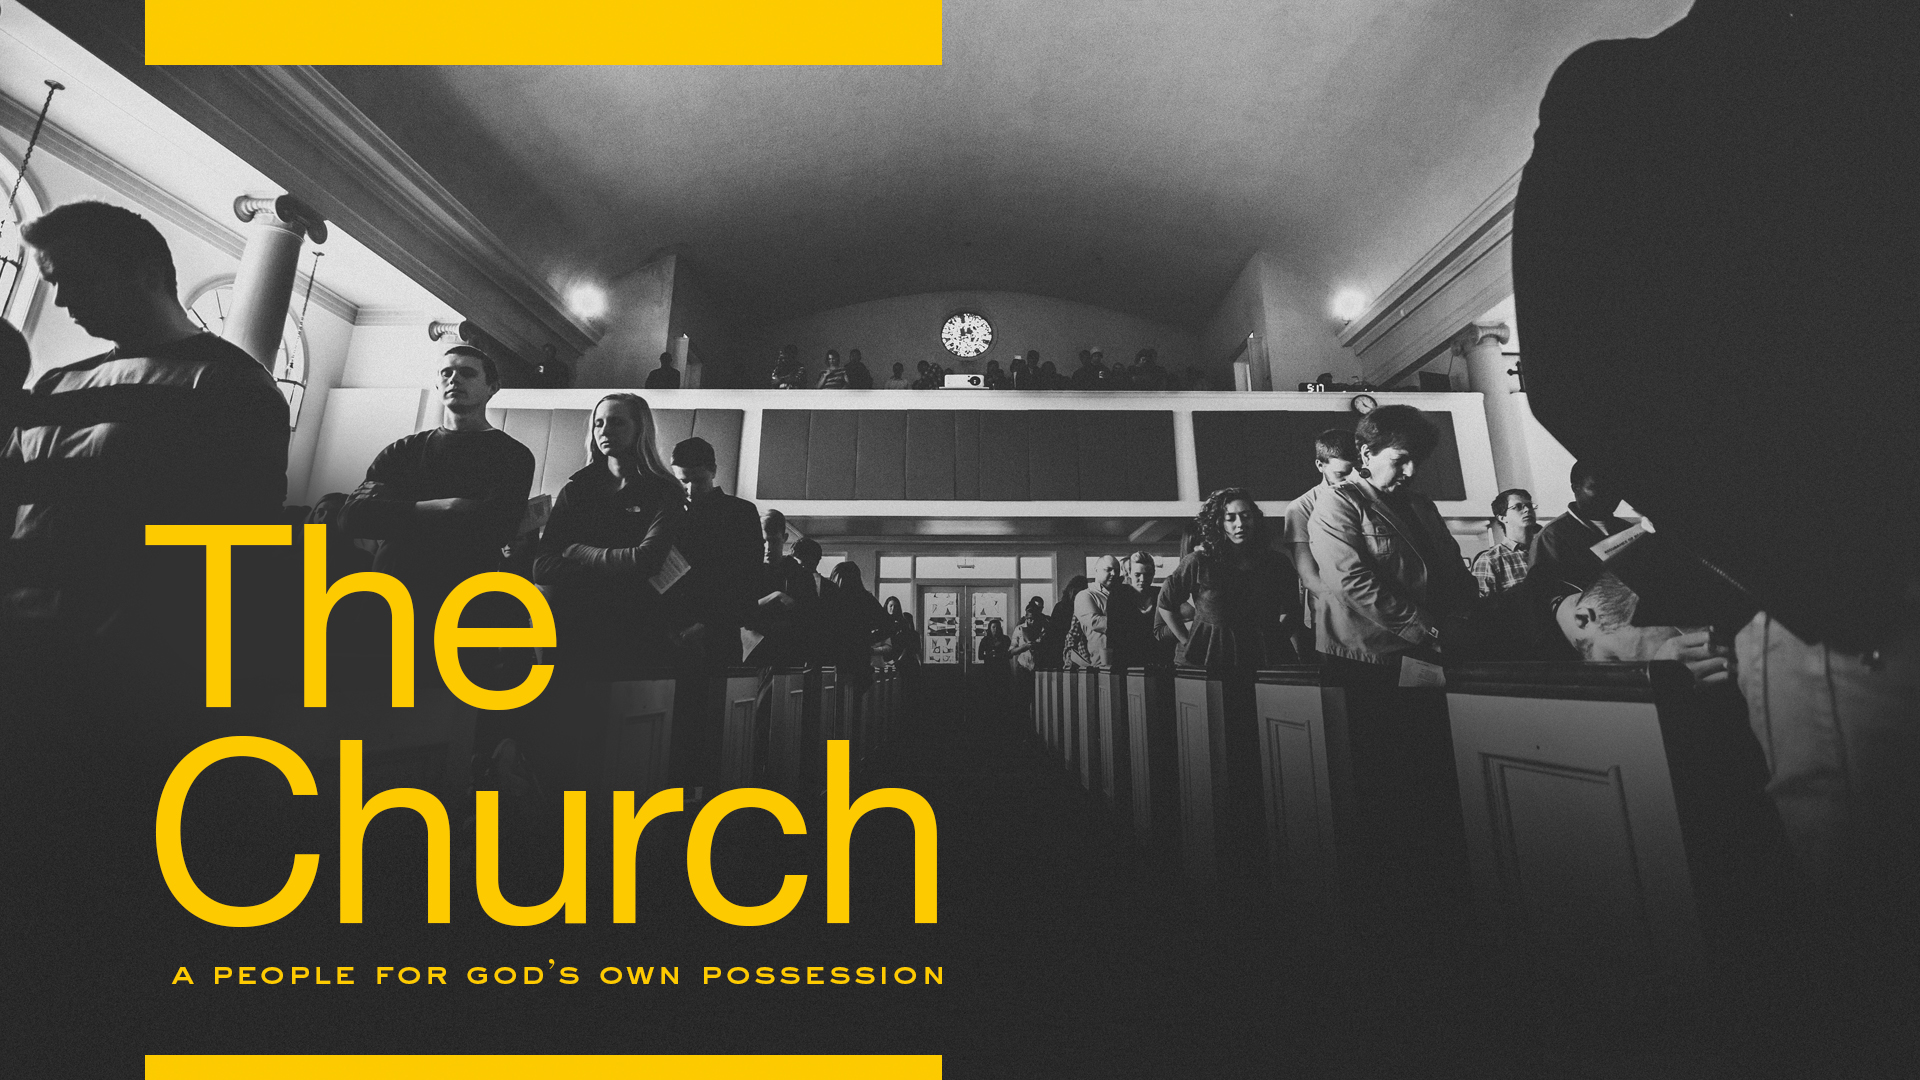 The Church: A People For God's Own Possession